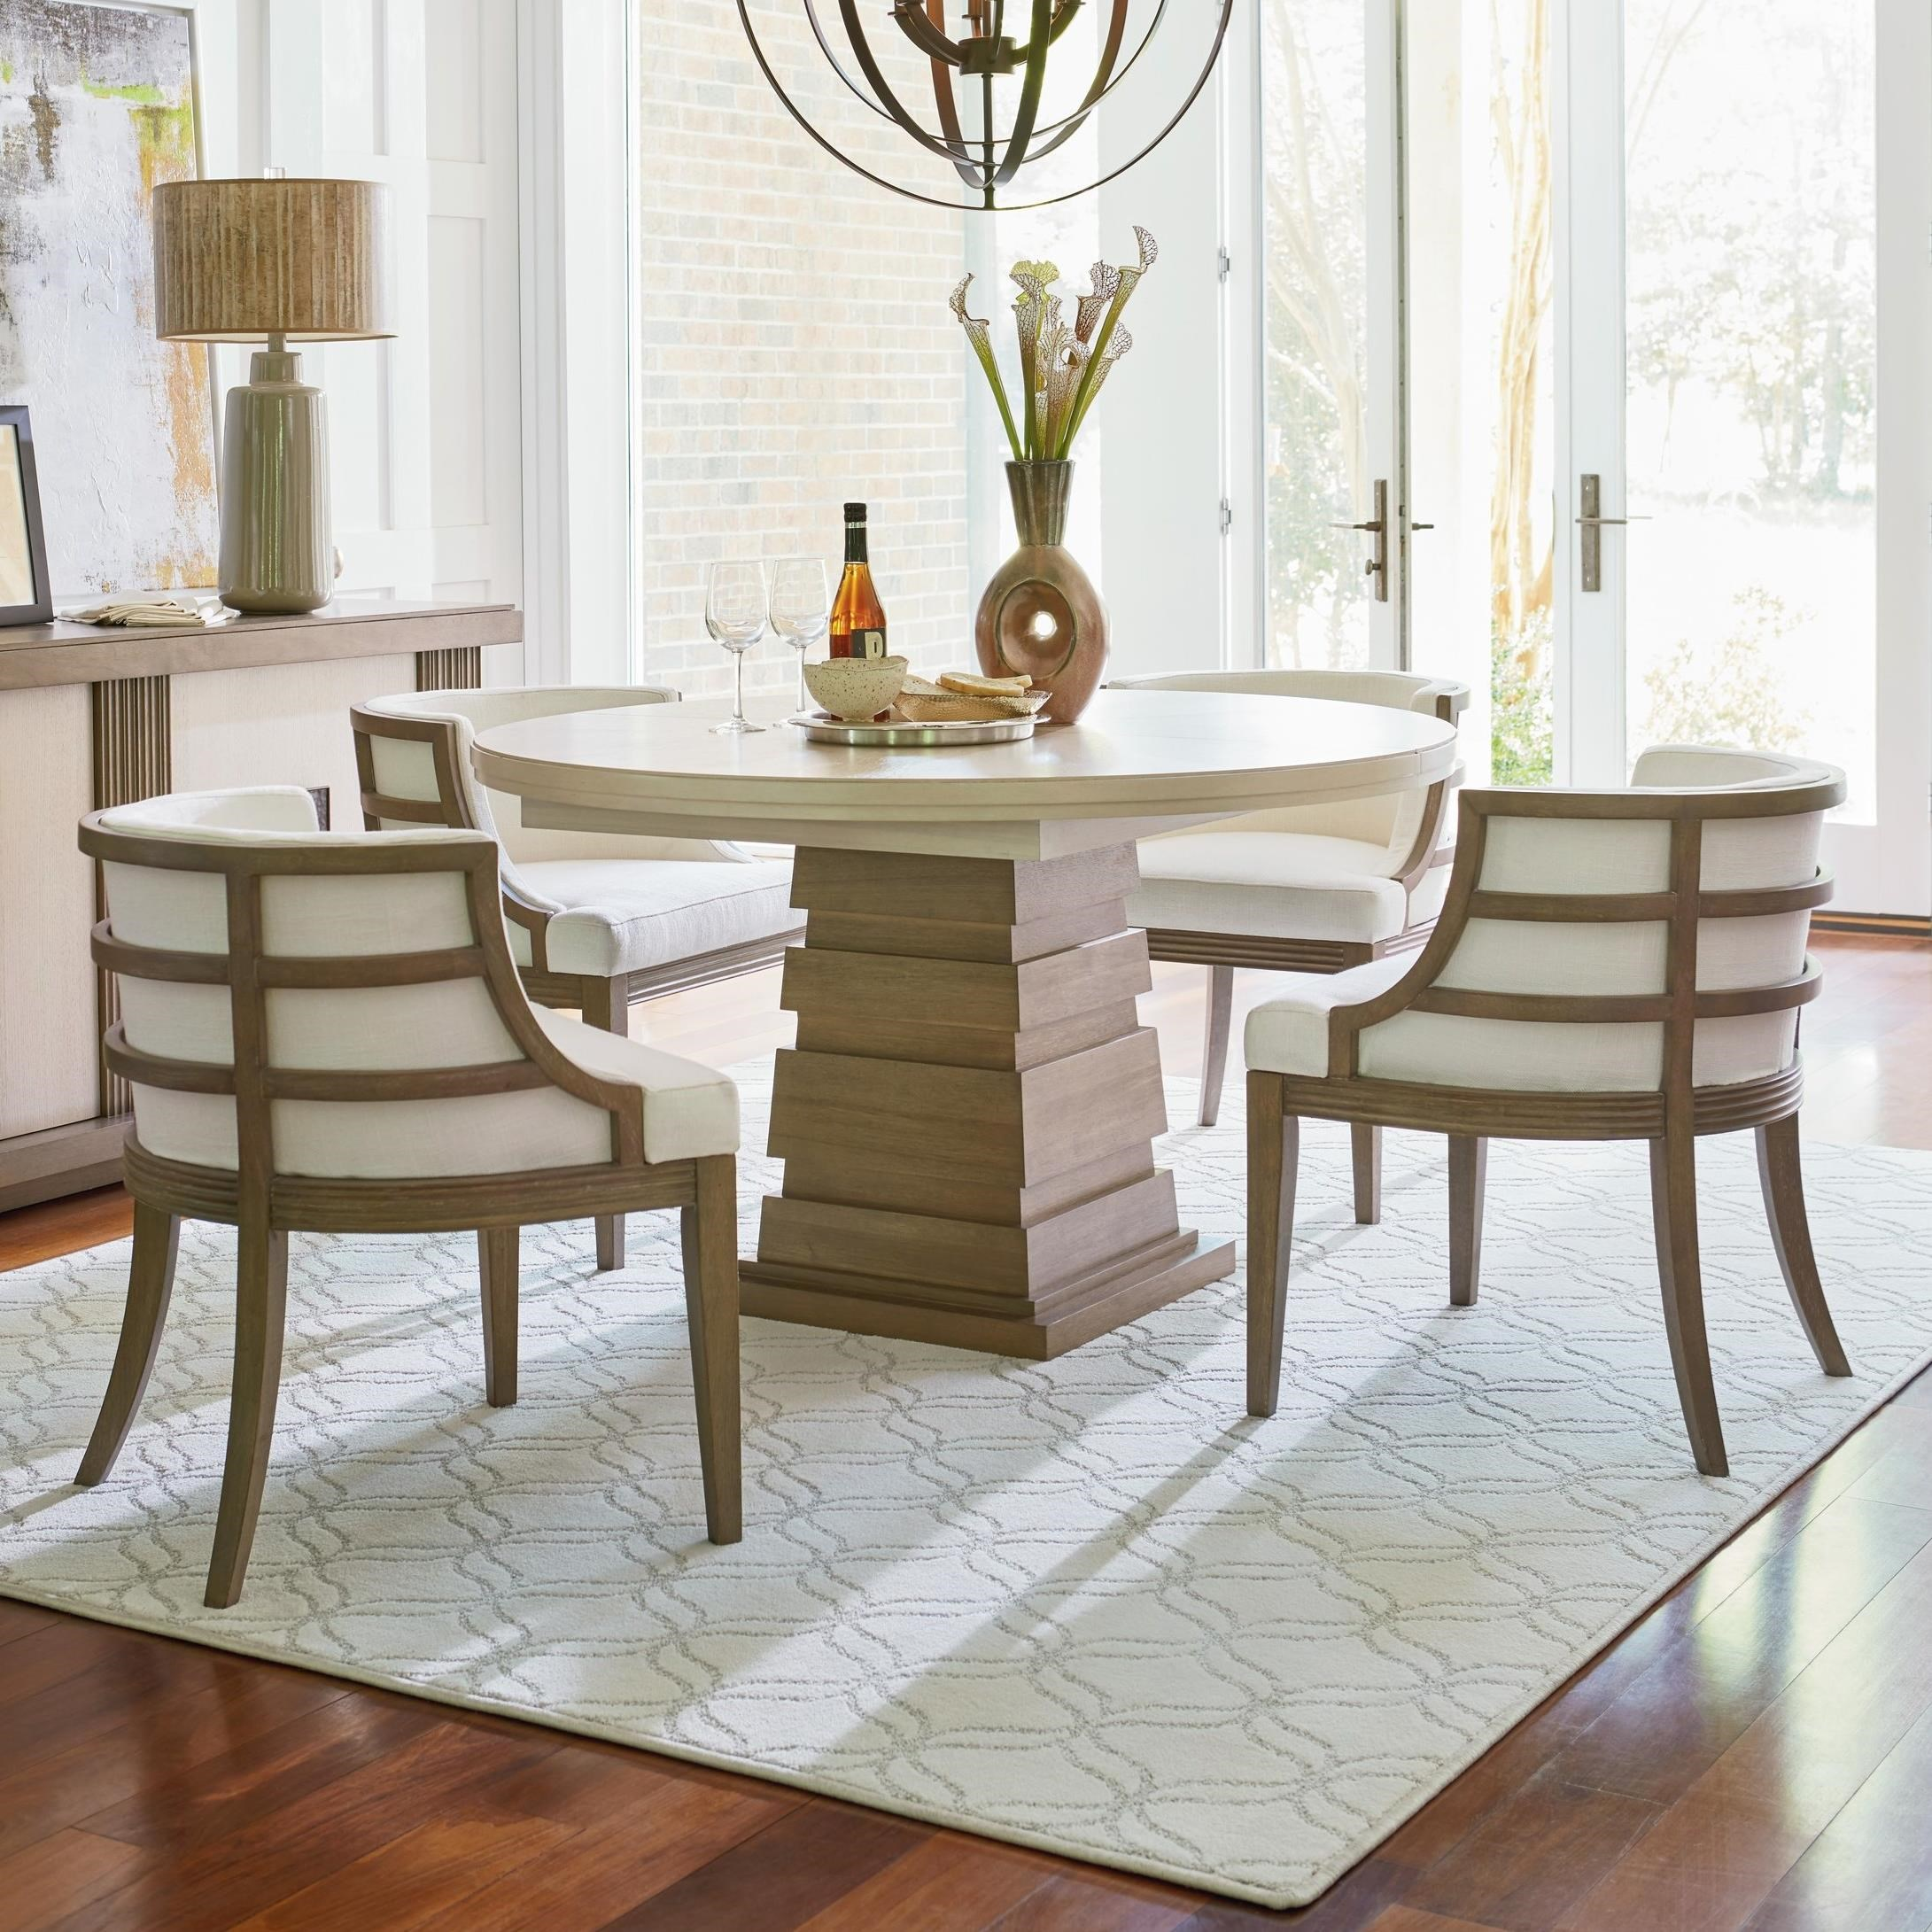 Round Table And Chair Set Universal Synchronicity 5 Piece Round Table And Chair Set